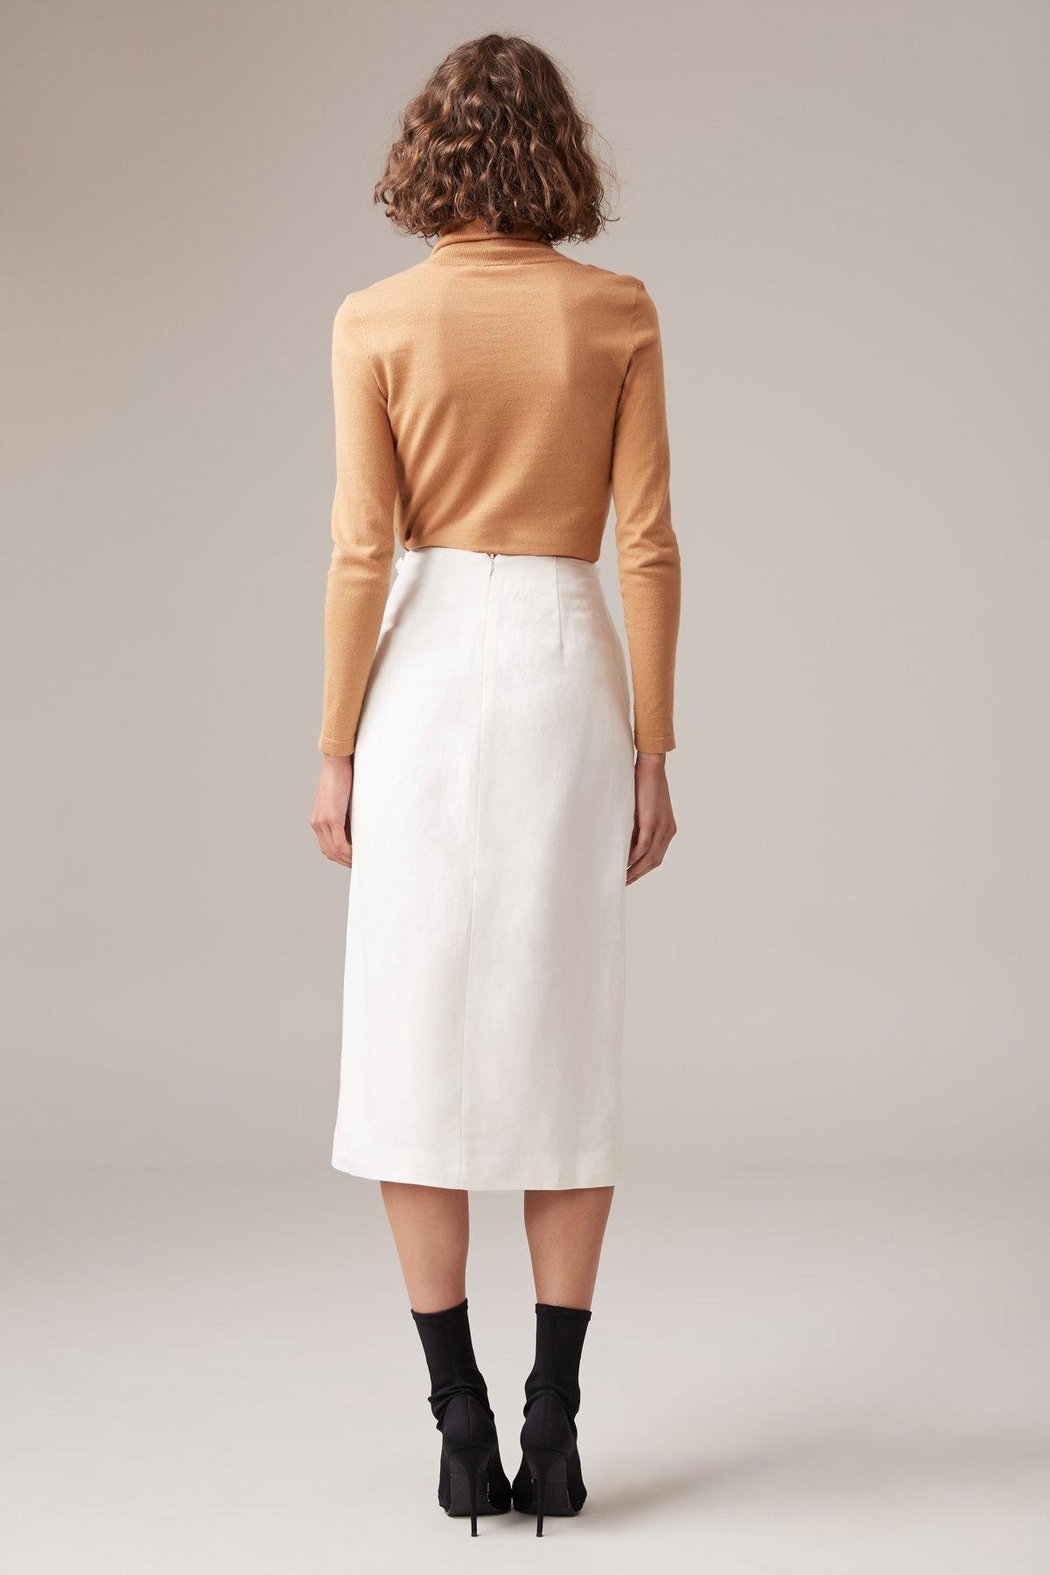 C/MEO COLLECTIVE Fitted Linen Skirt - Front Full Image